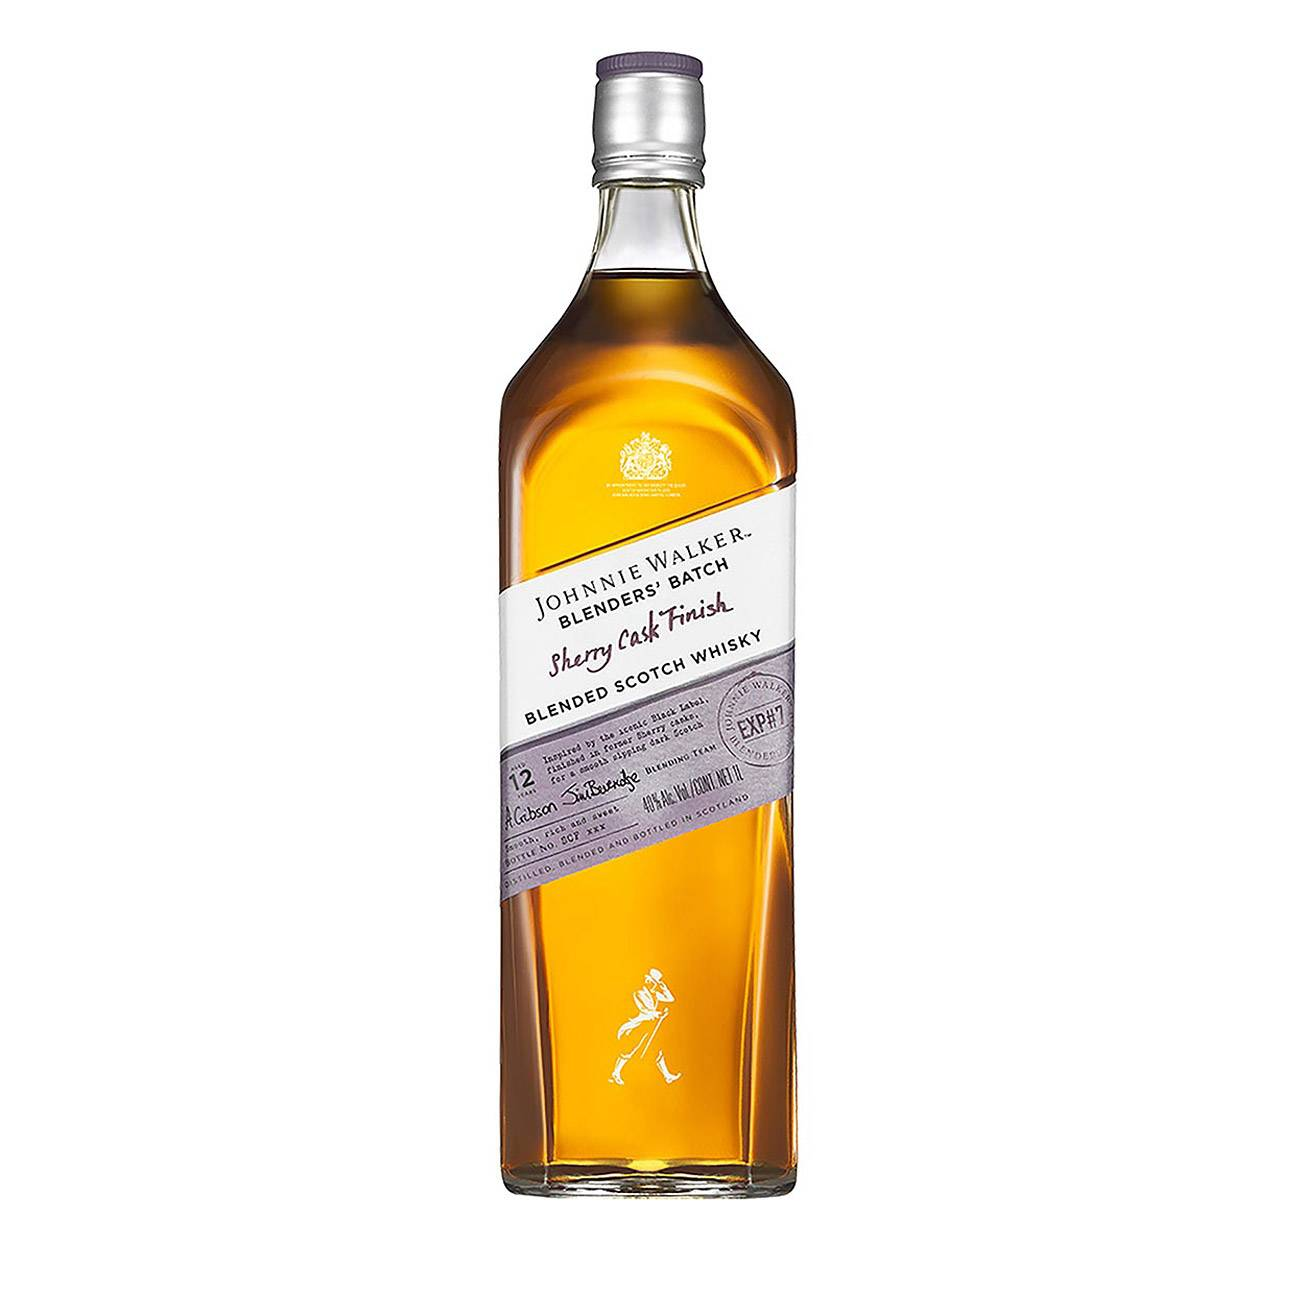 Whisky scotian, BLENDER BATCH SHERRY CASK 1000ml, Johnnie Walker